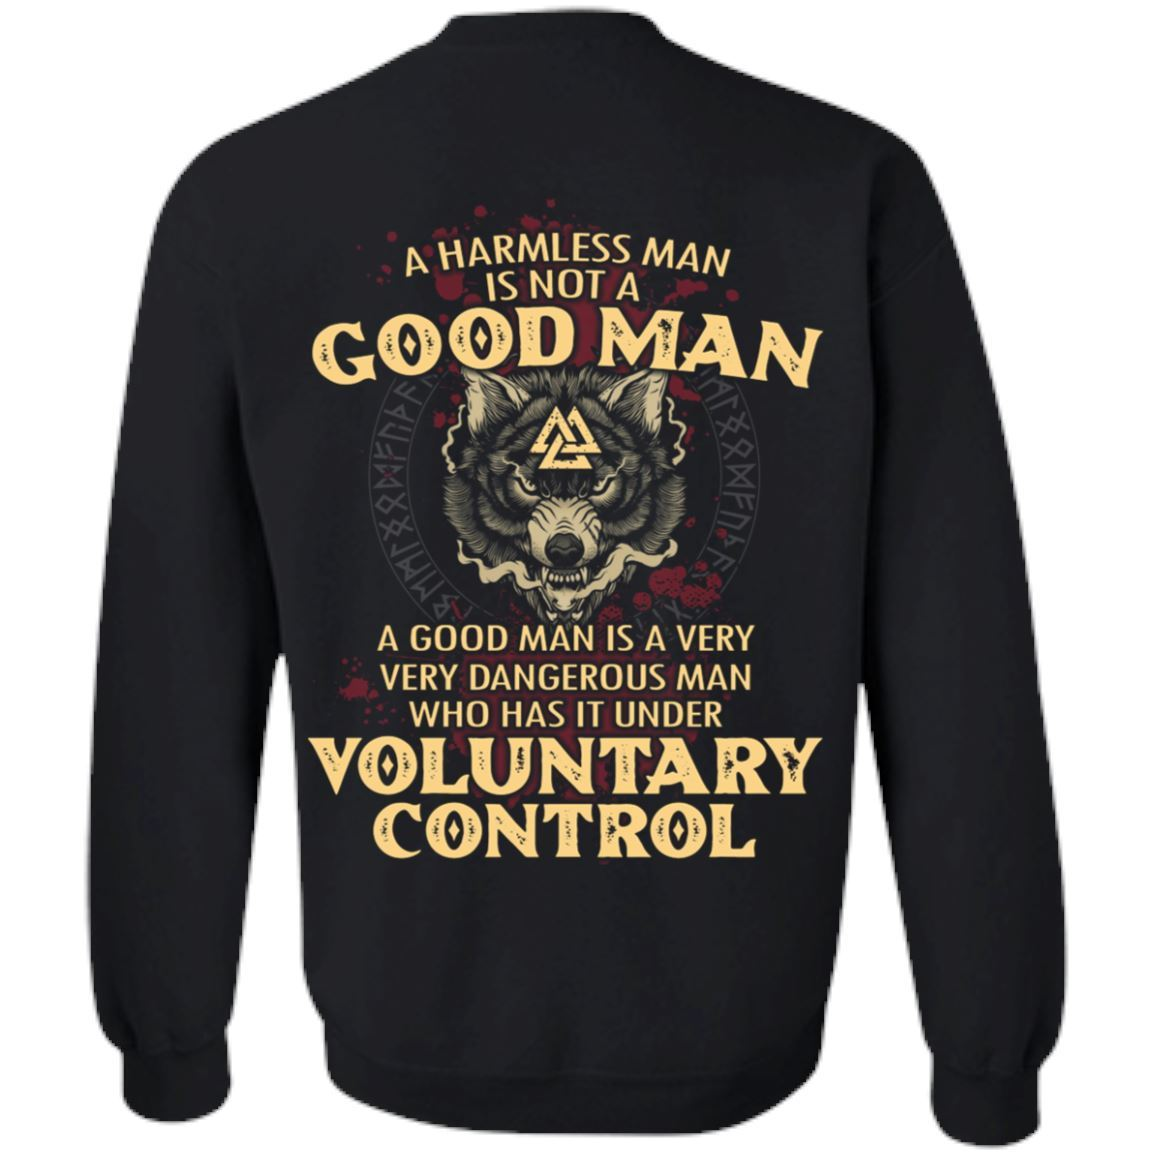 viking norse gym t shirt apparel a harmless man is not a good man backapparel heathen by nature authentic viking products unisex crewneck pullover sweatshirtblacks 978109 1024x1024@2x